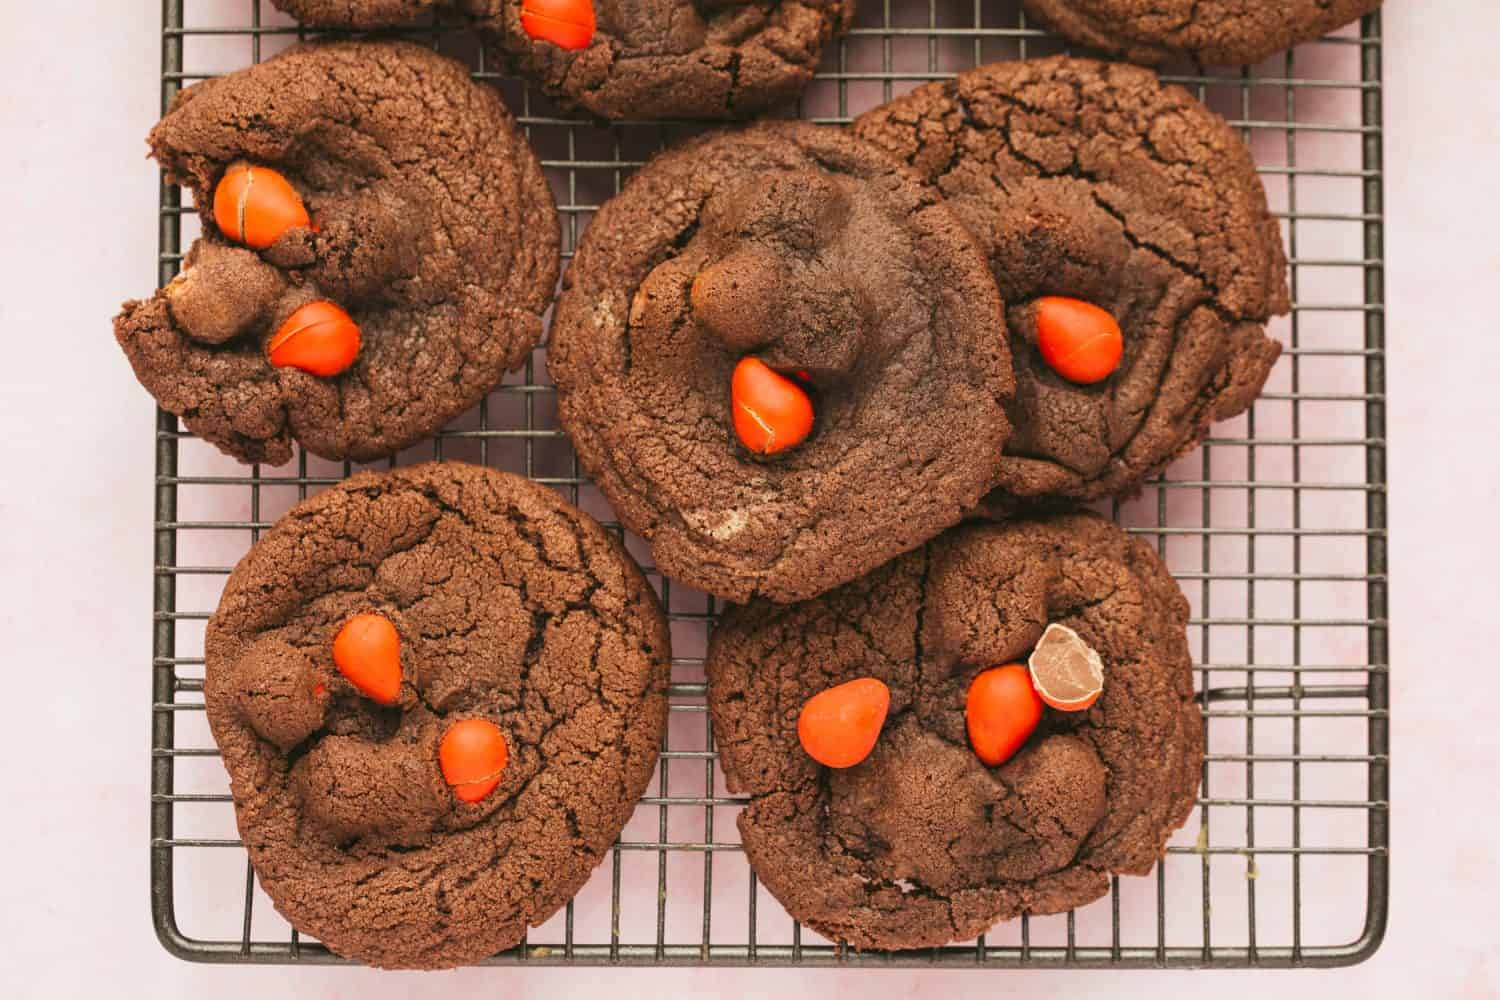 A baking tray covered in baked cookies.